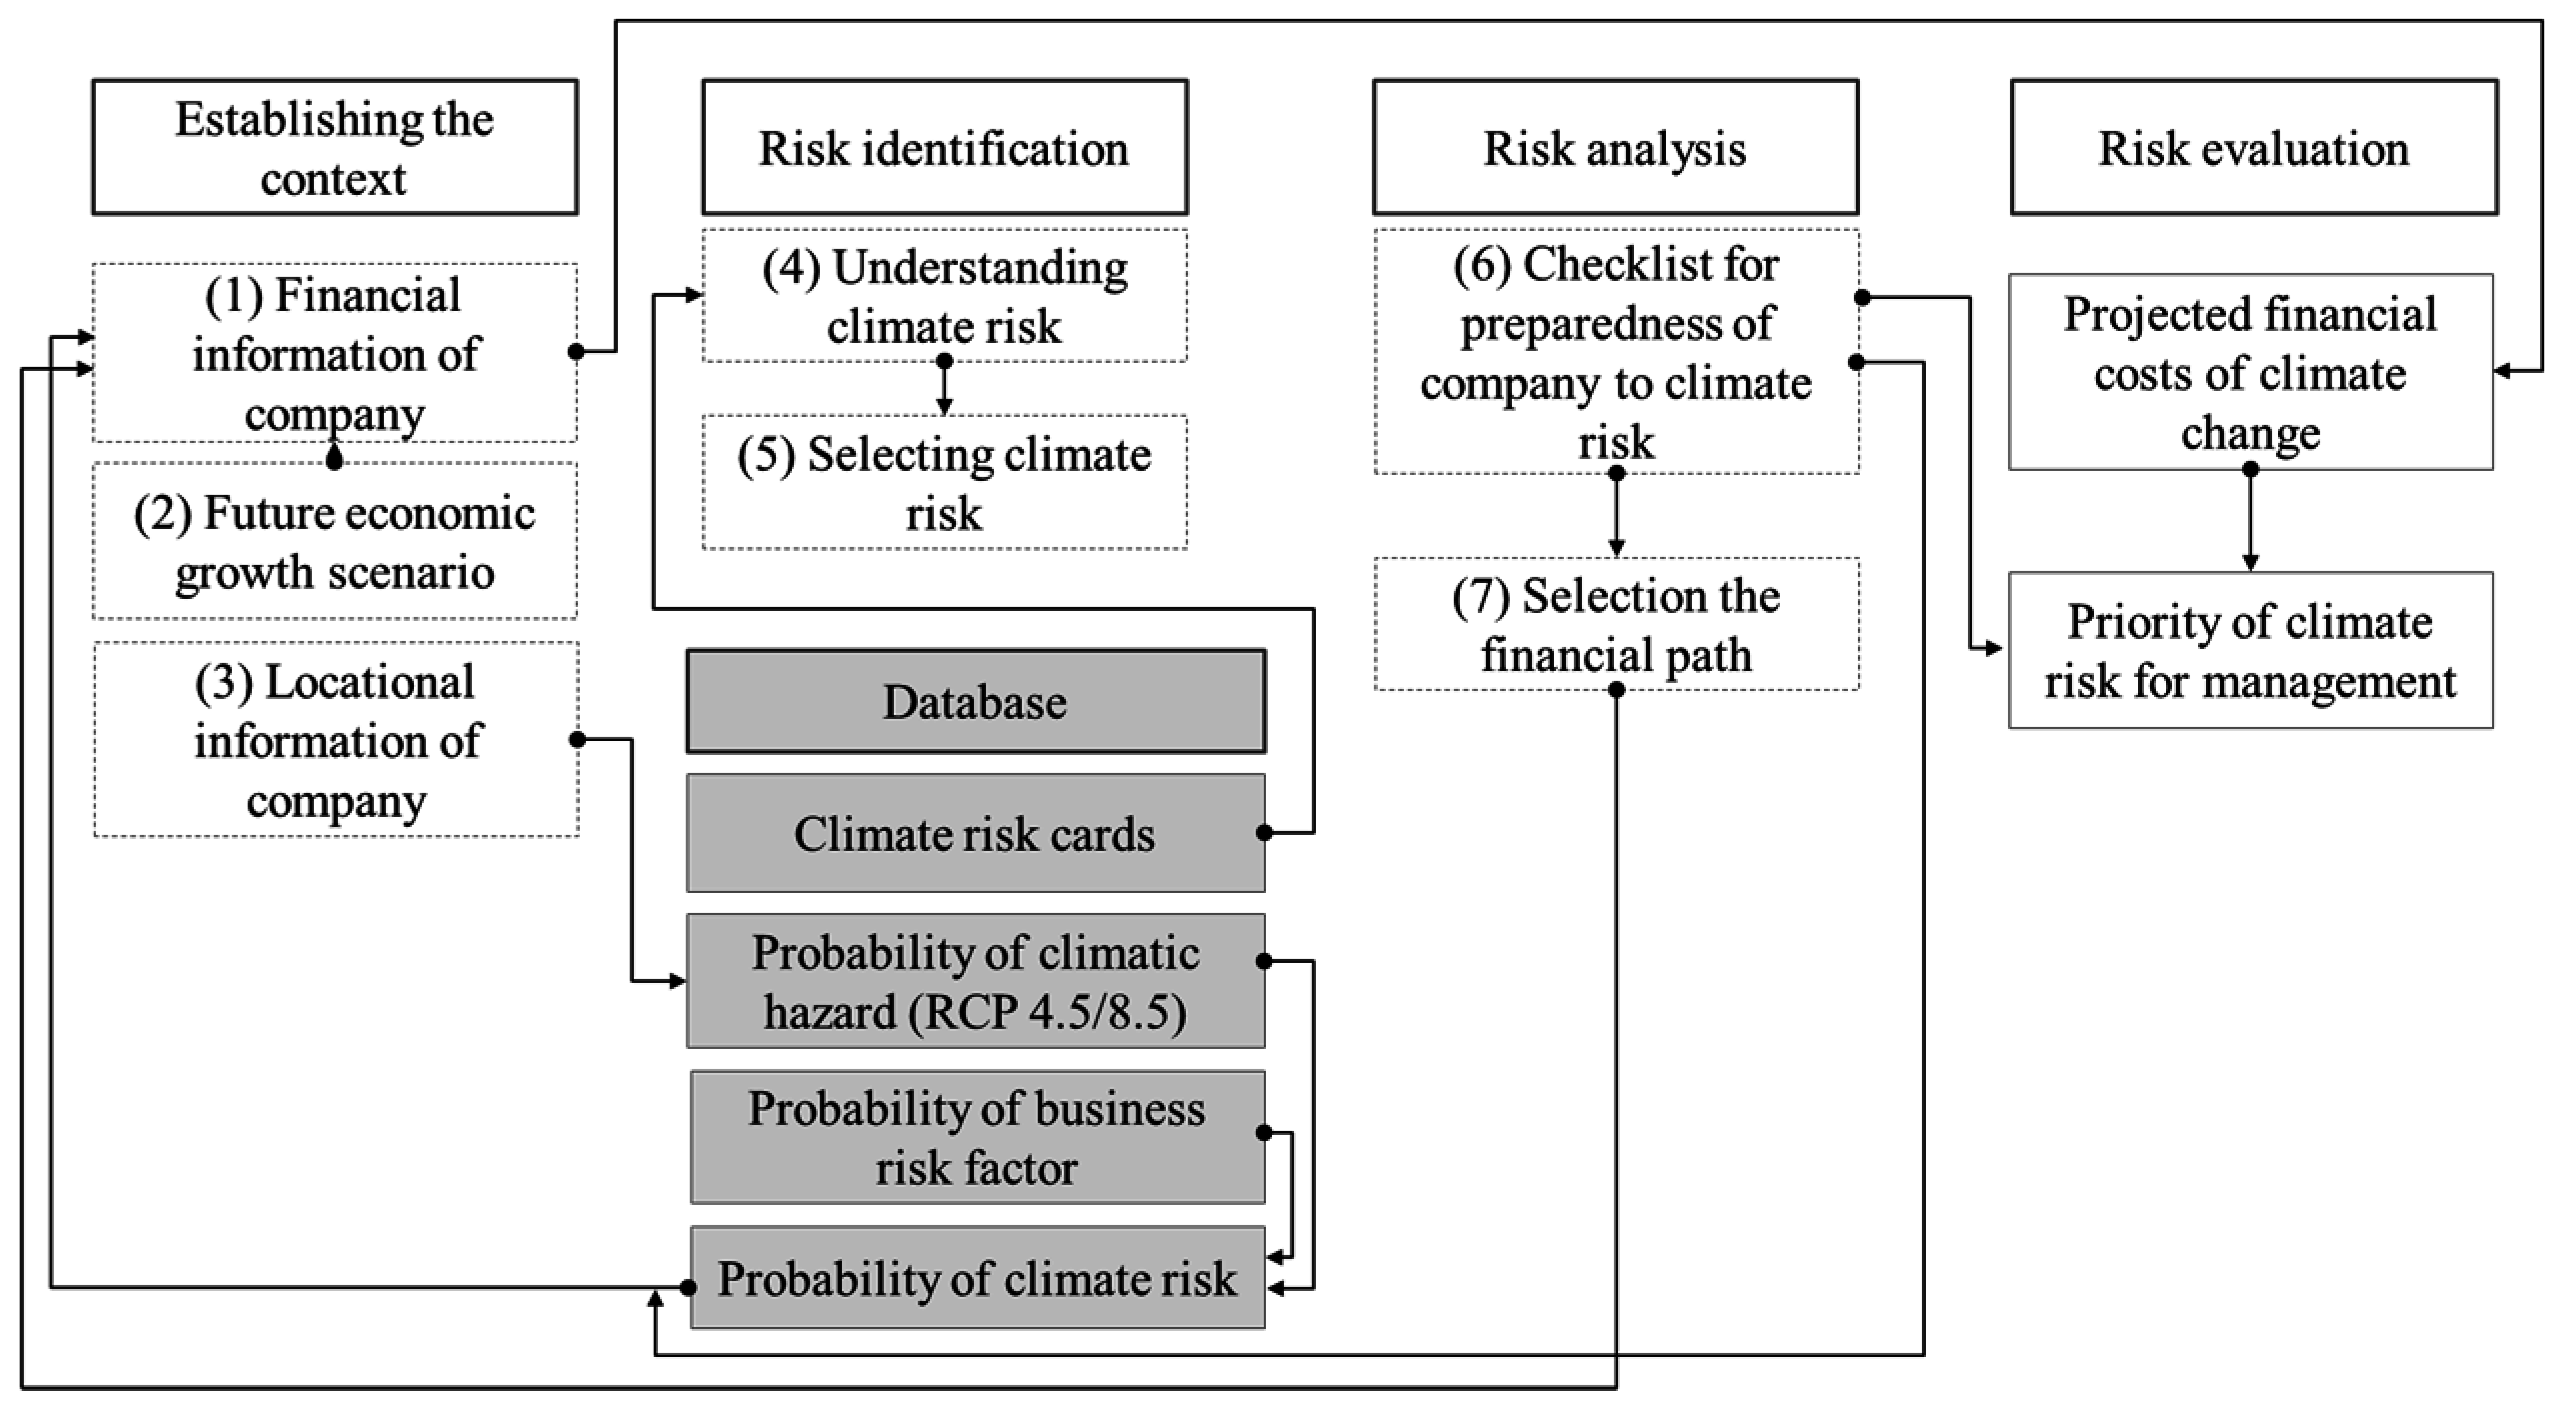 business risks in the context of This paper will highlight some of the most pertinent issues that need to be addressed when competing in the international business environment pertaining to risk management.